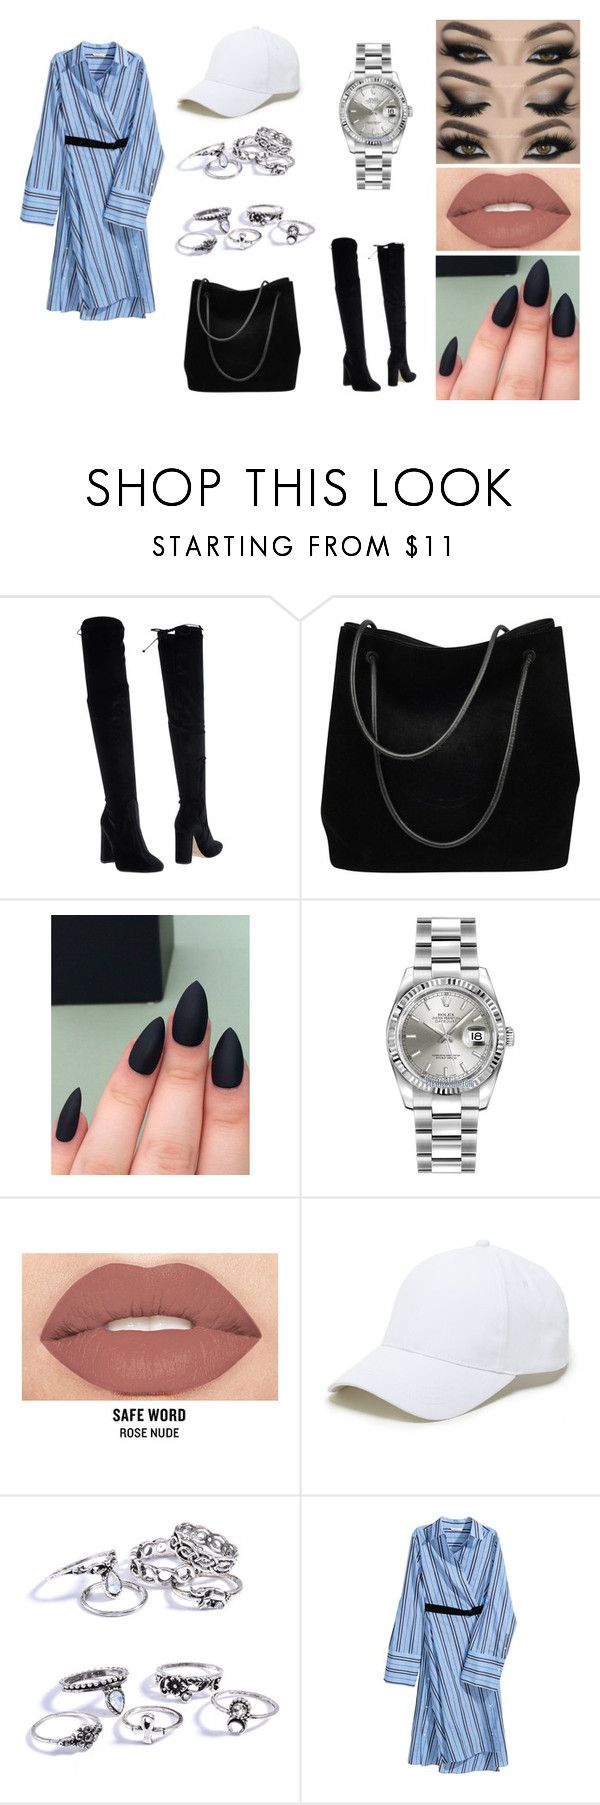 """090417"" by hazelozcan on Polyvore featuring moda, Bianca Di, Gucci, Rolex, Smashbox ve Sole Society"